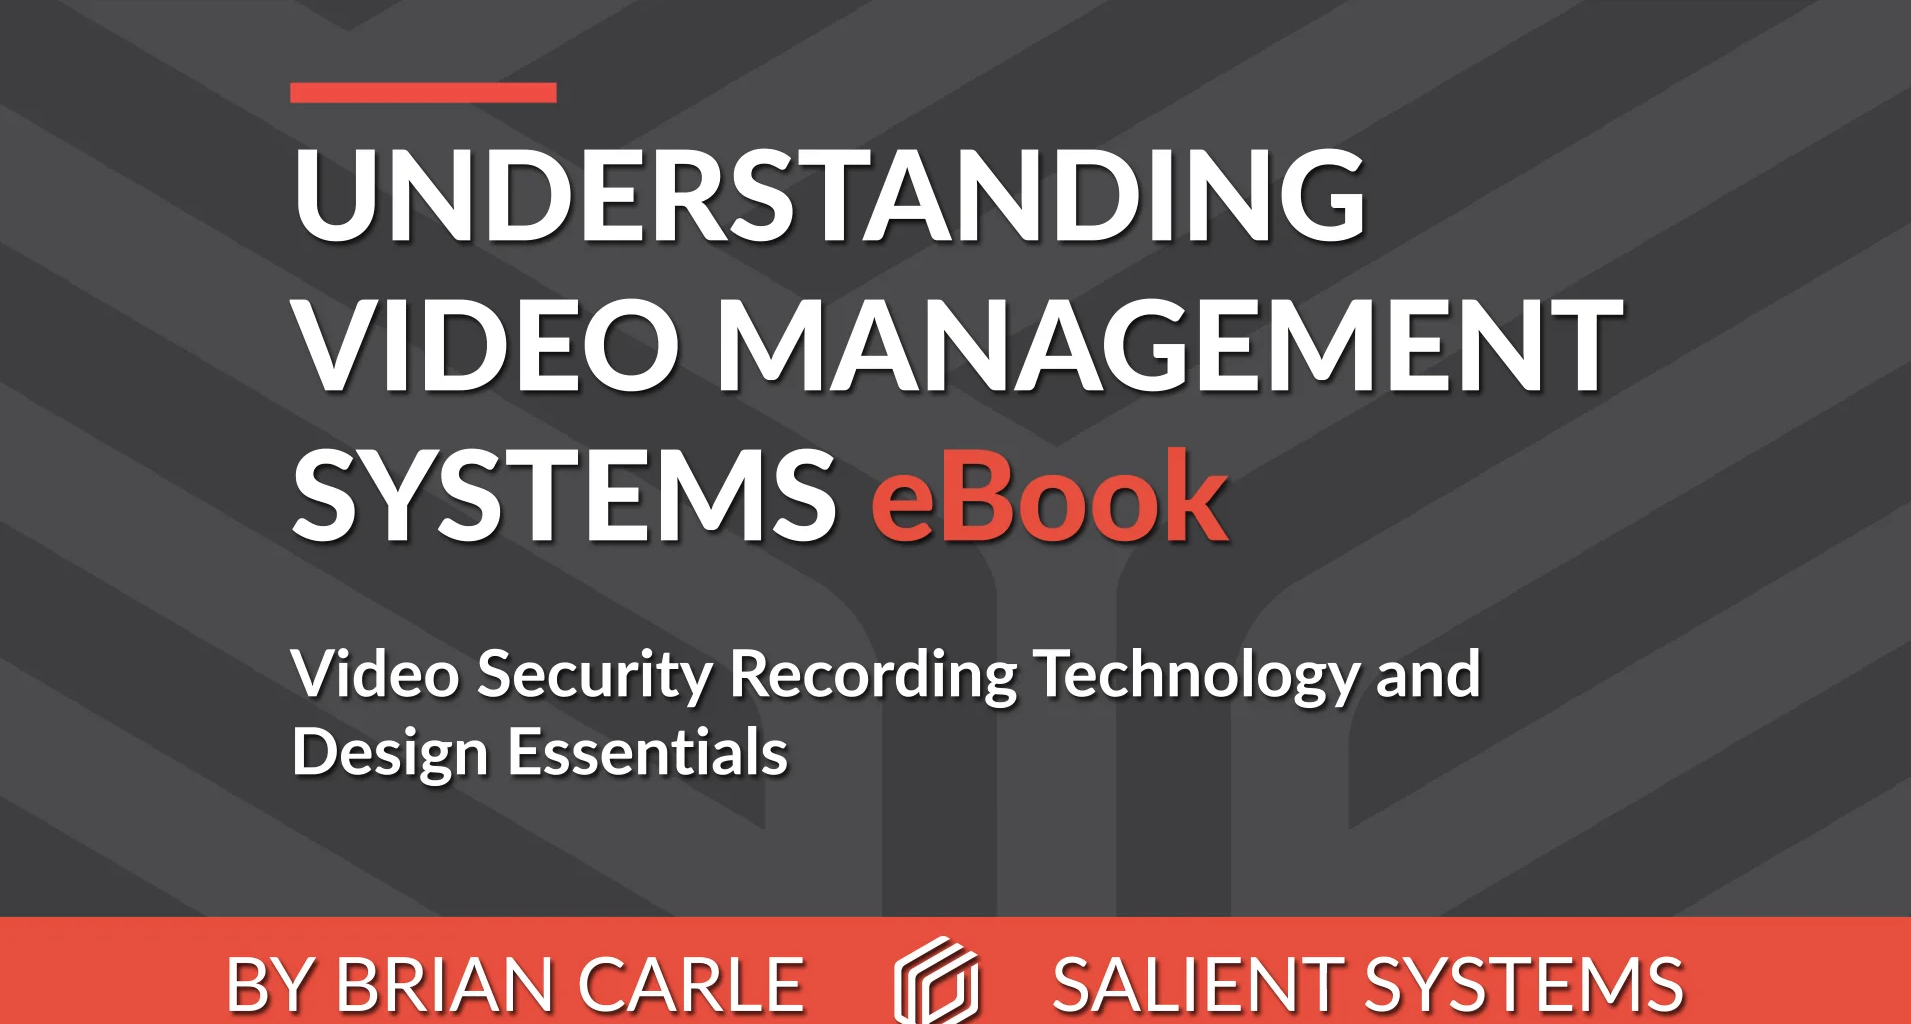 poster image for Understanding Video Management Systems eBook video